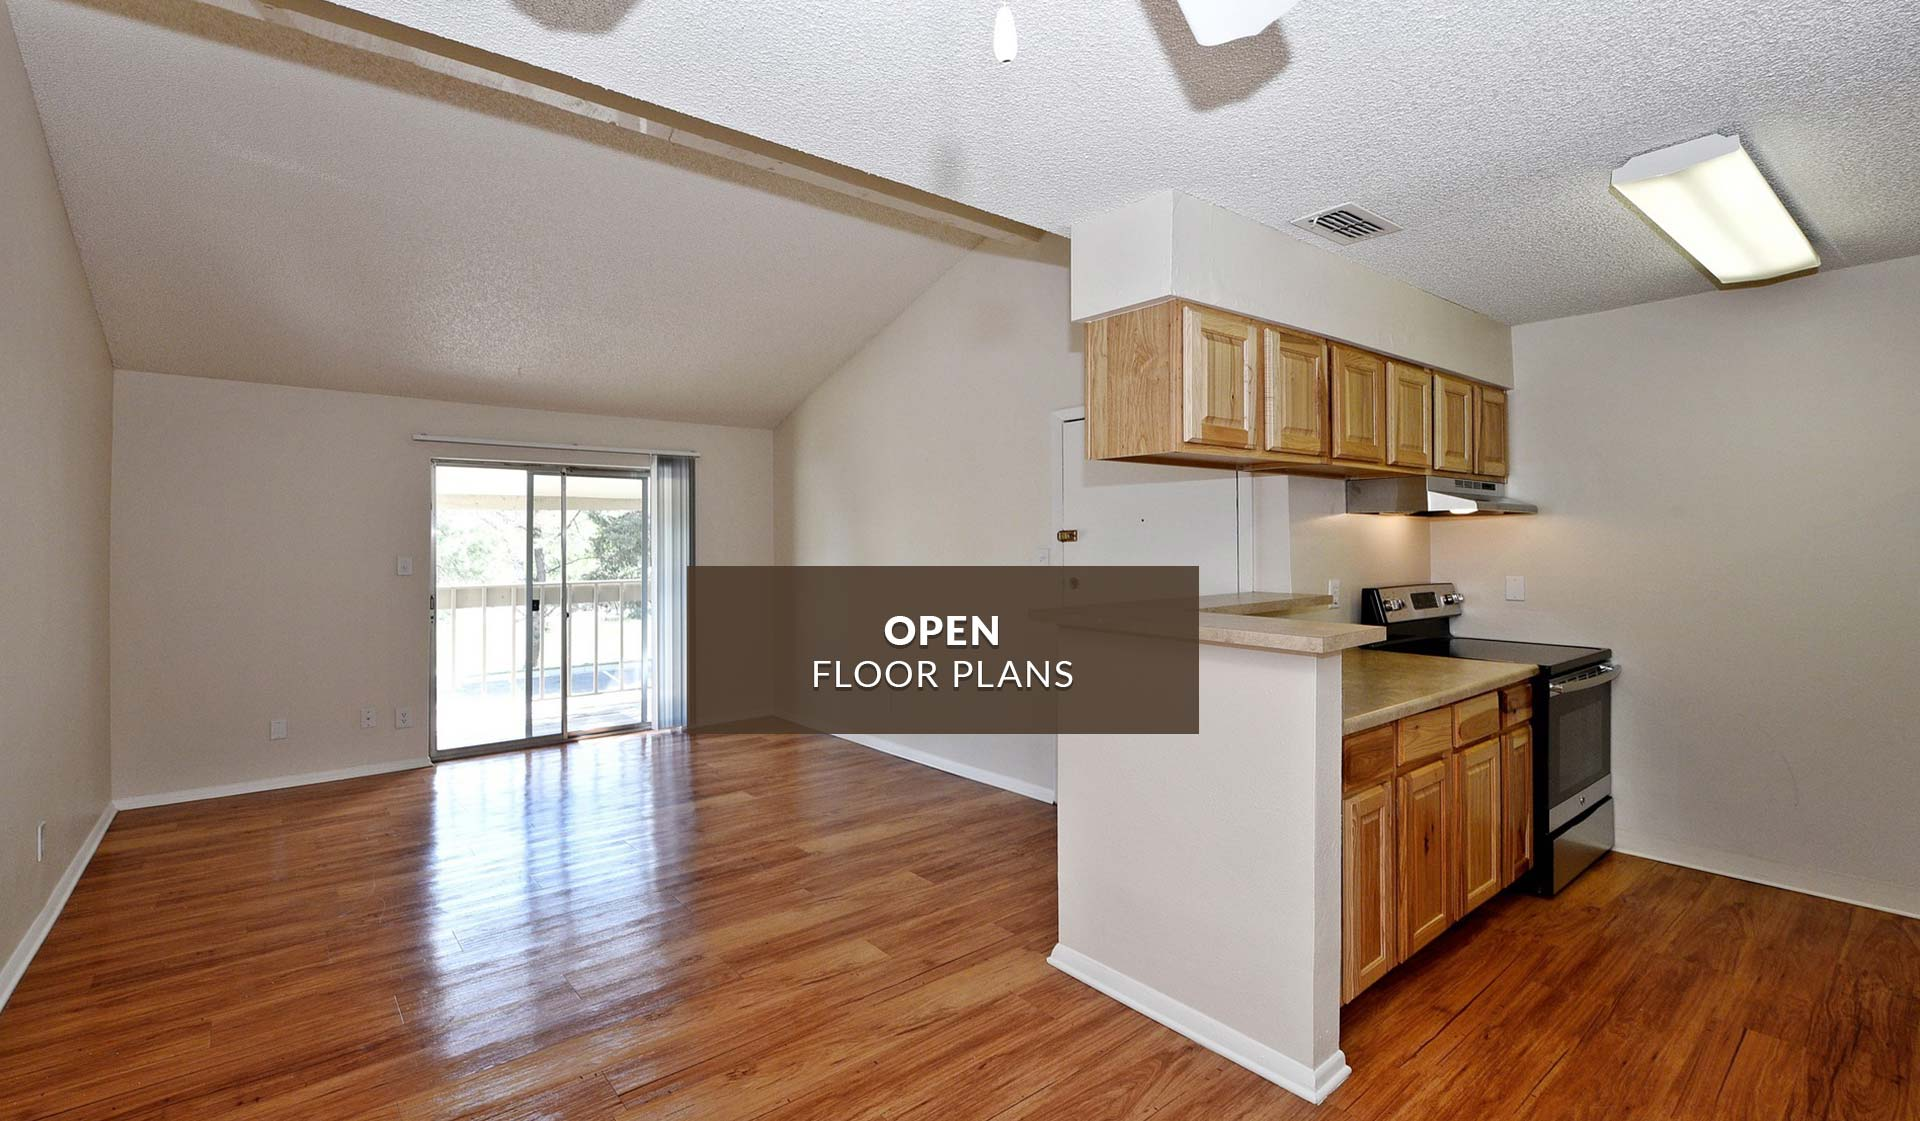 Creekside Apartments - interior of open floor plan with living room and kitchen - denver, CO